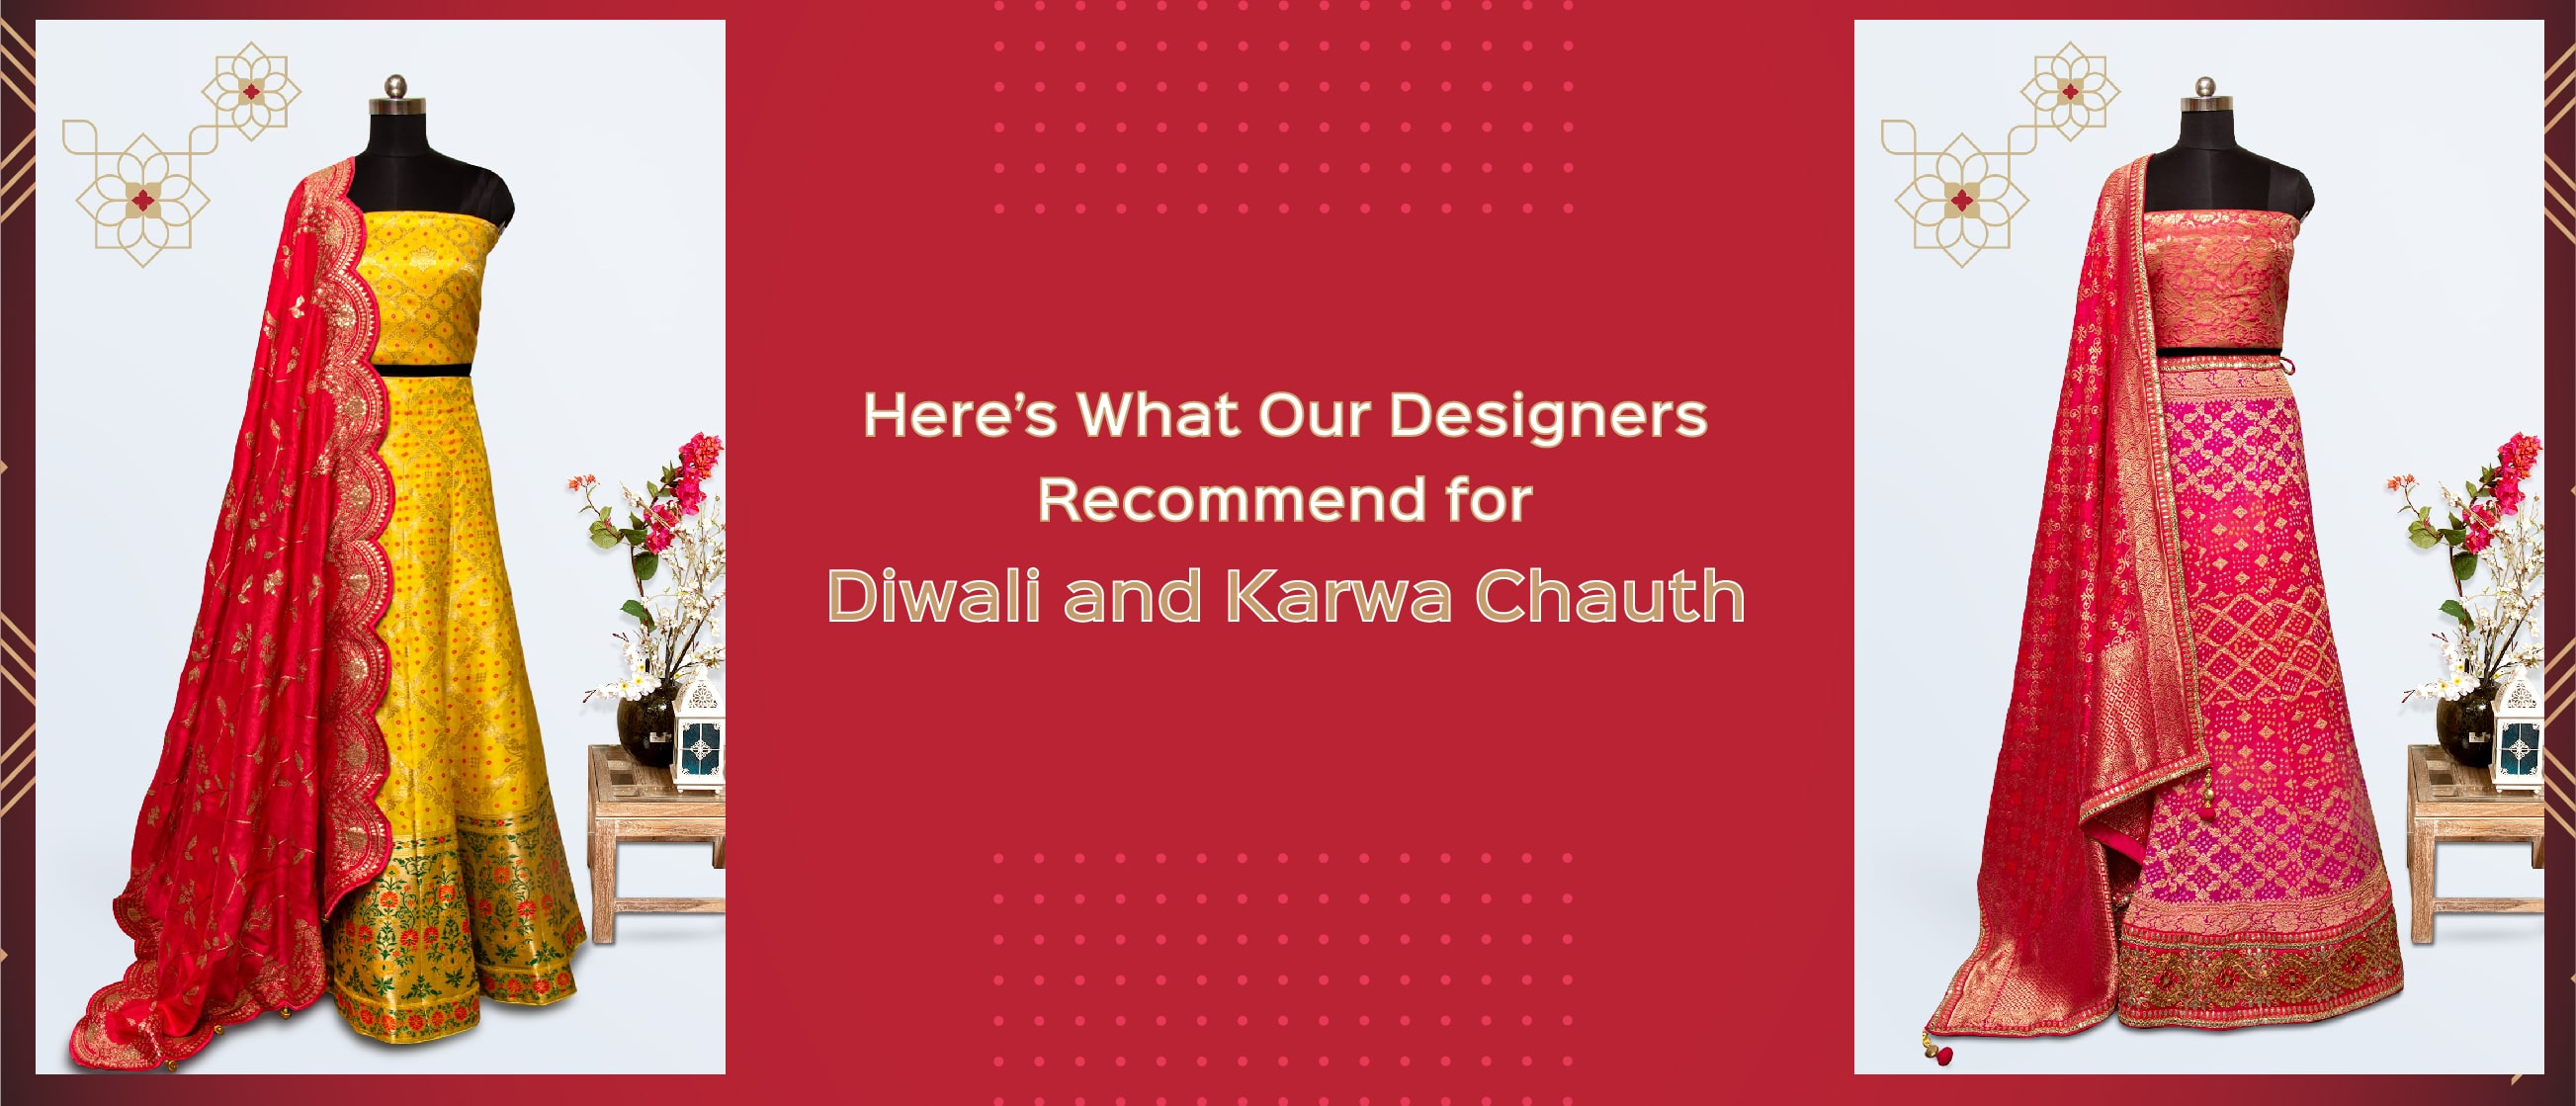 Here's What Our Designers Recommend for Diwali and Karva Chauth